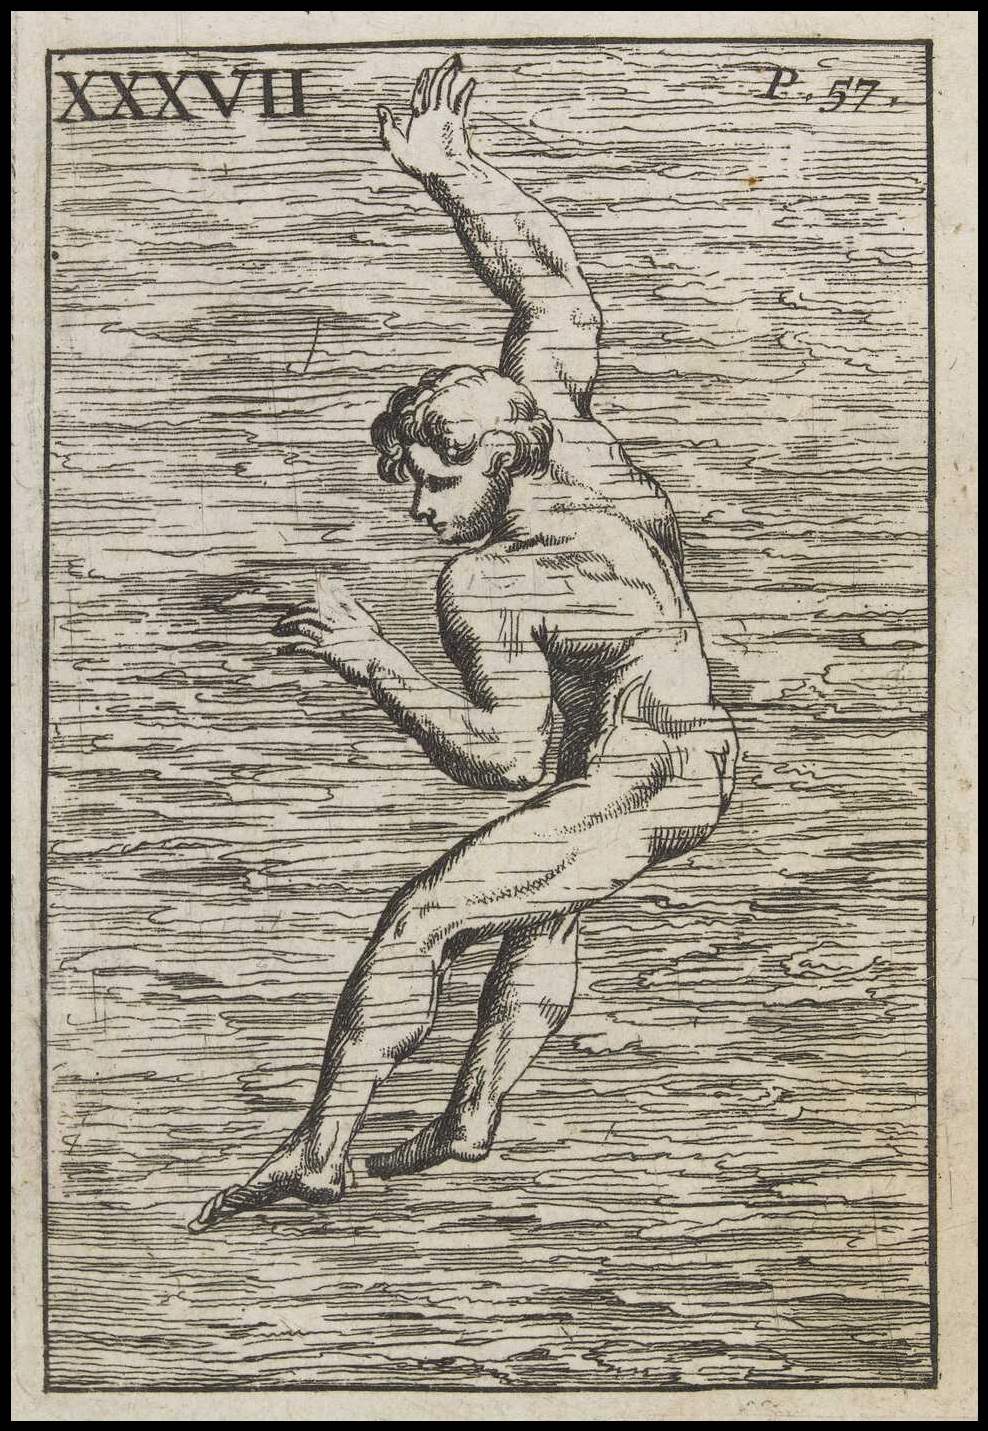 nude swimmer returning to water's surface - sketch